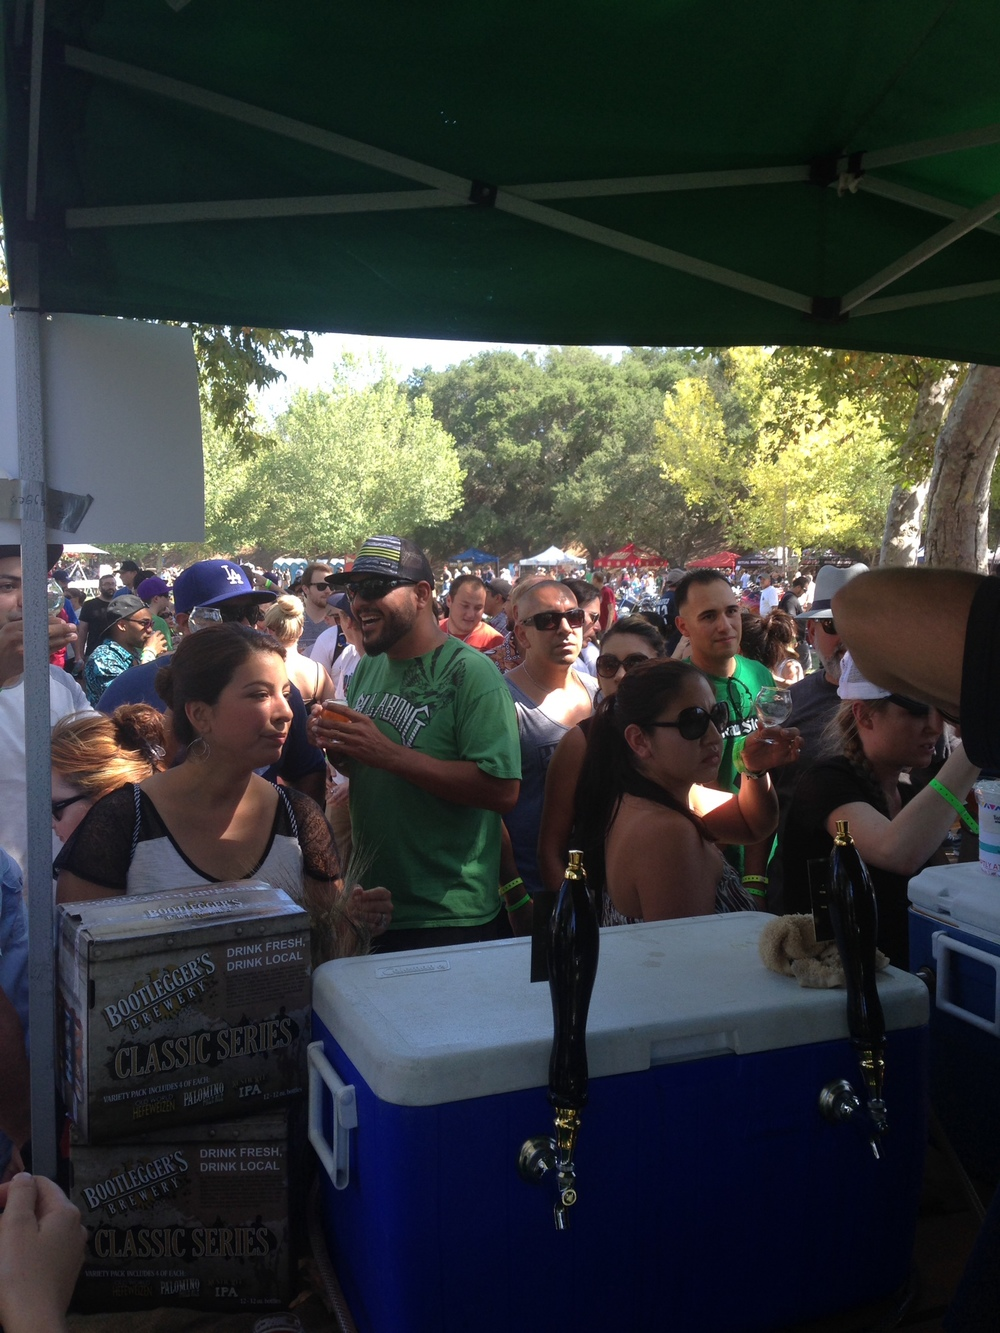 A crowd formed at Bootlegger's booth when the tapped a keg of Knuckle Sandwich a Triple IPA